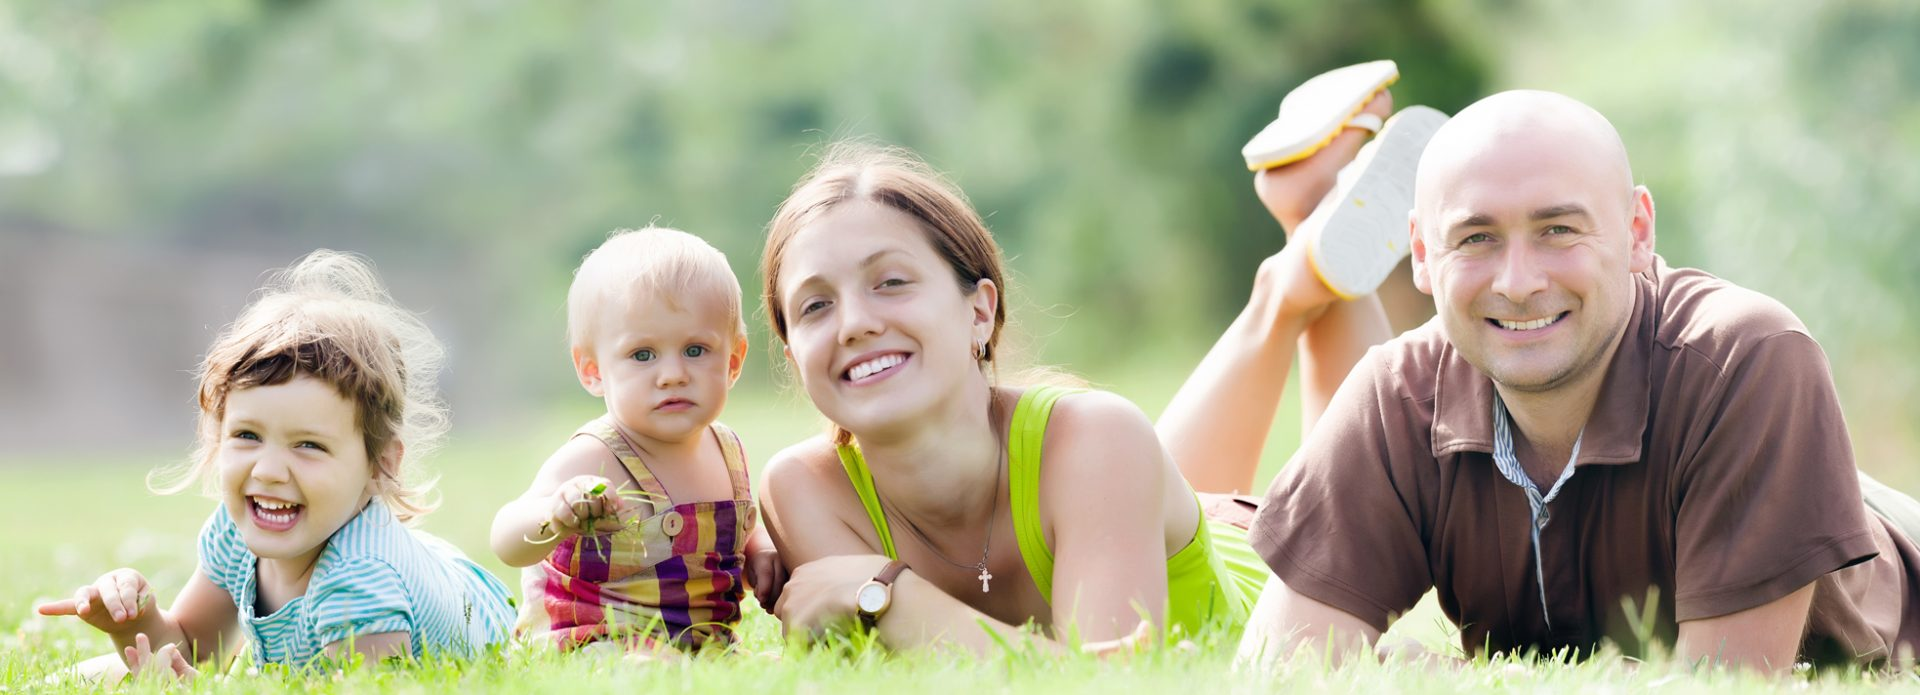 Happy family of four enjoying time at grass in summer park